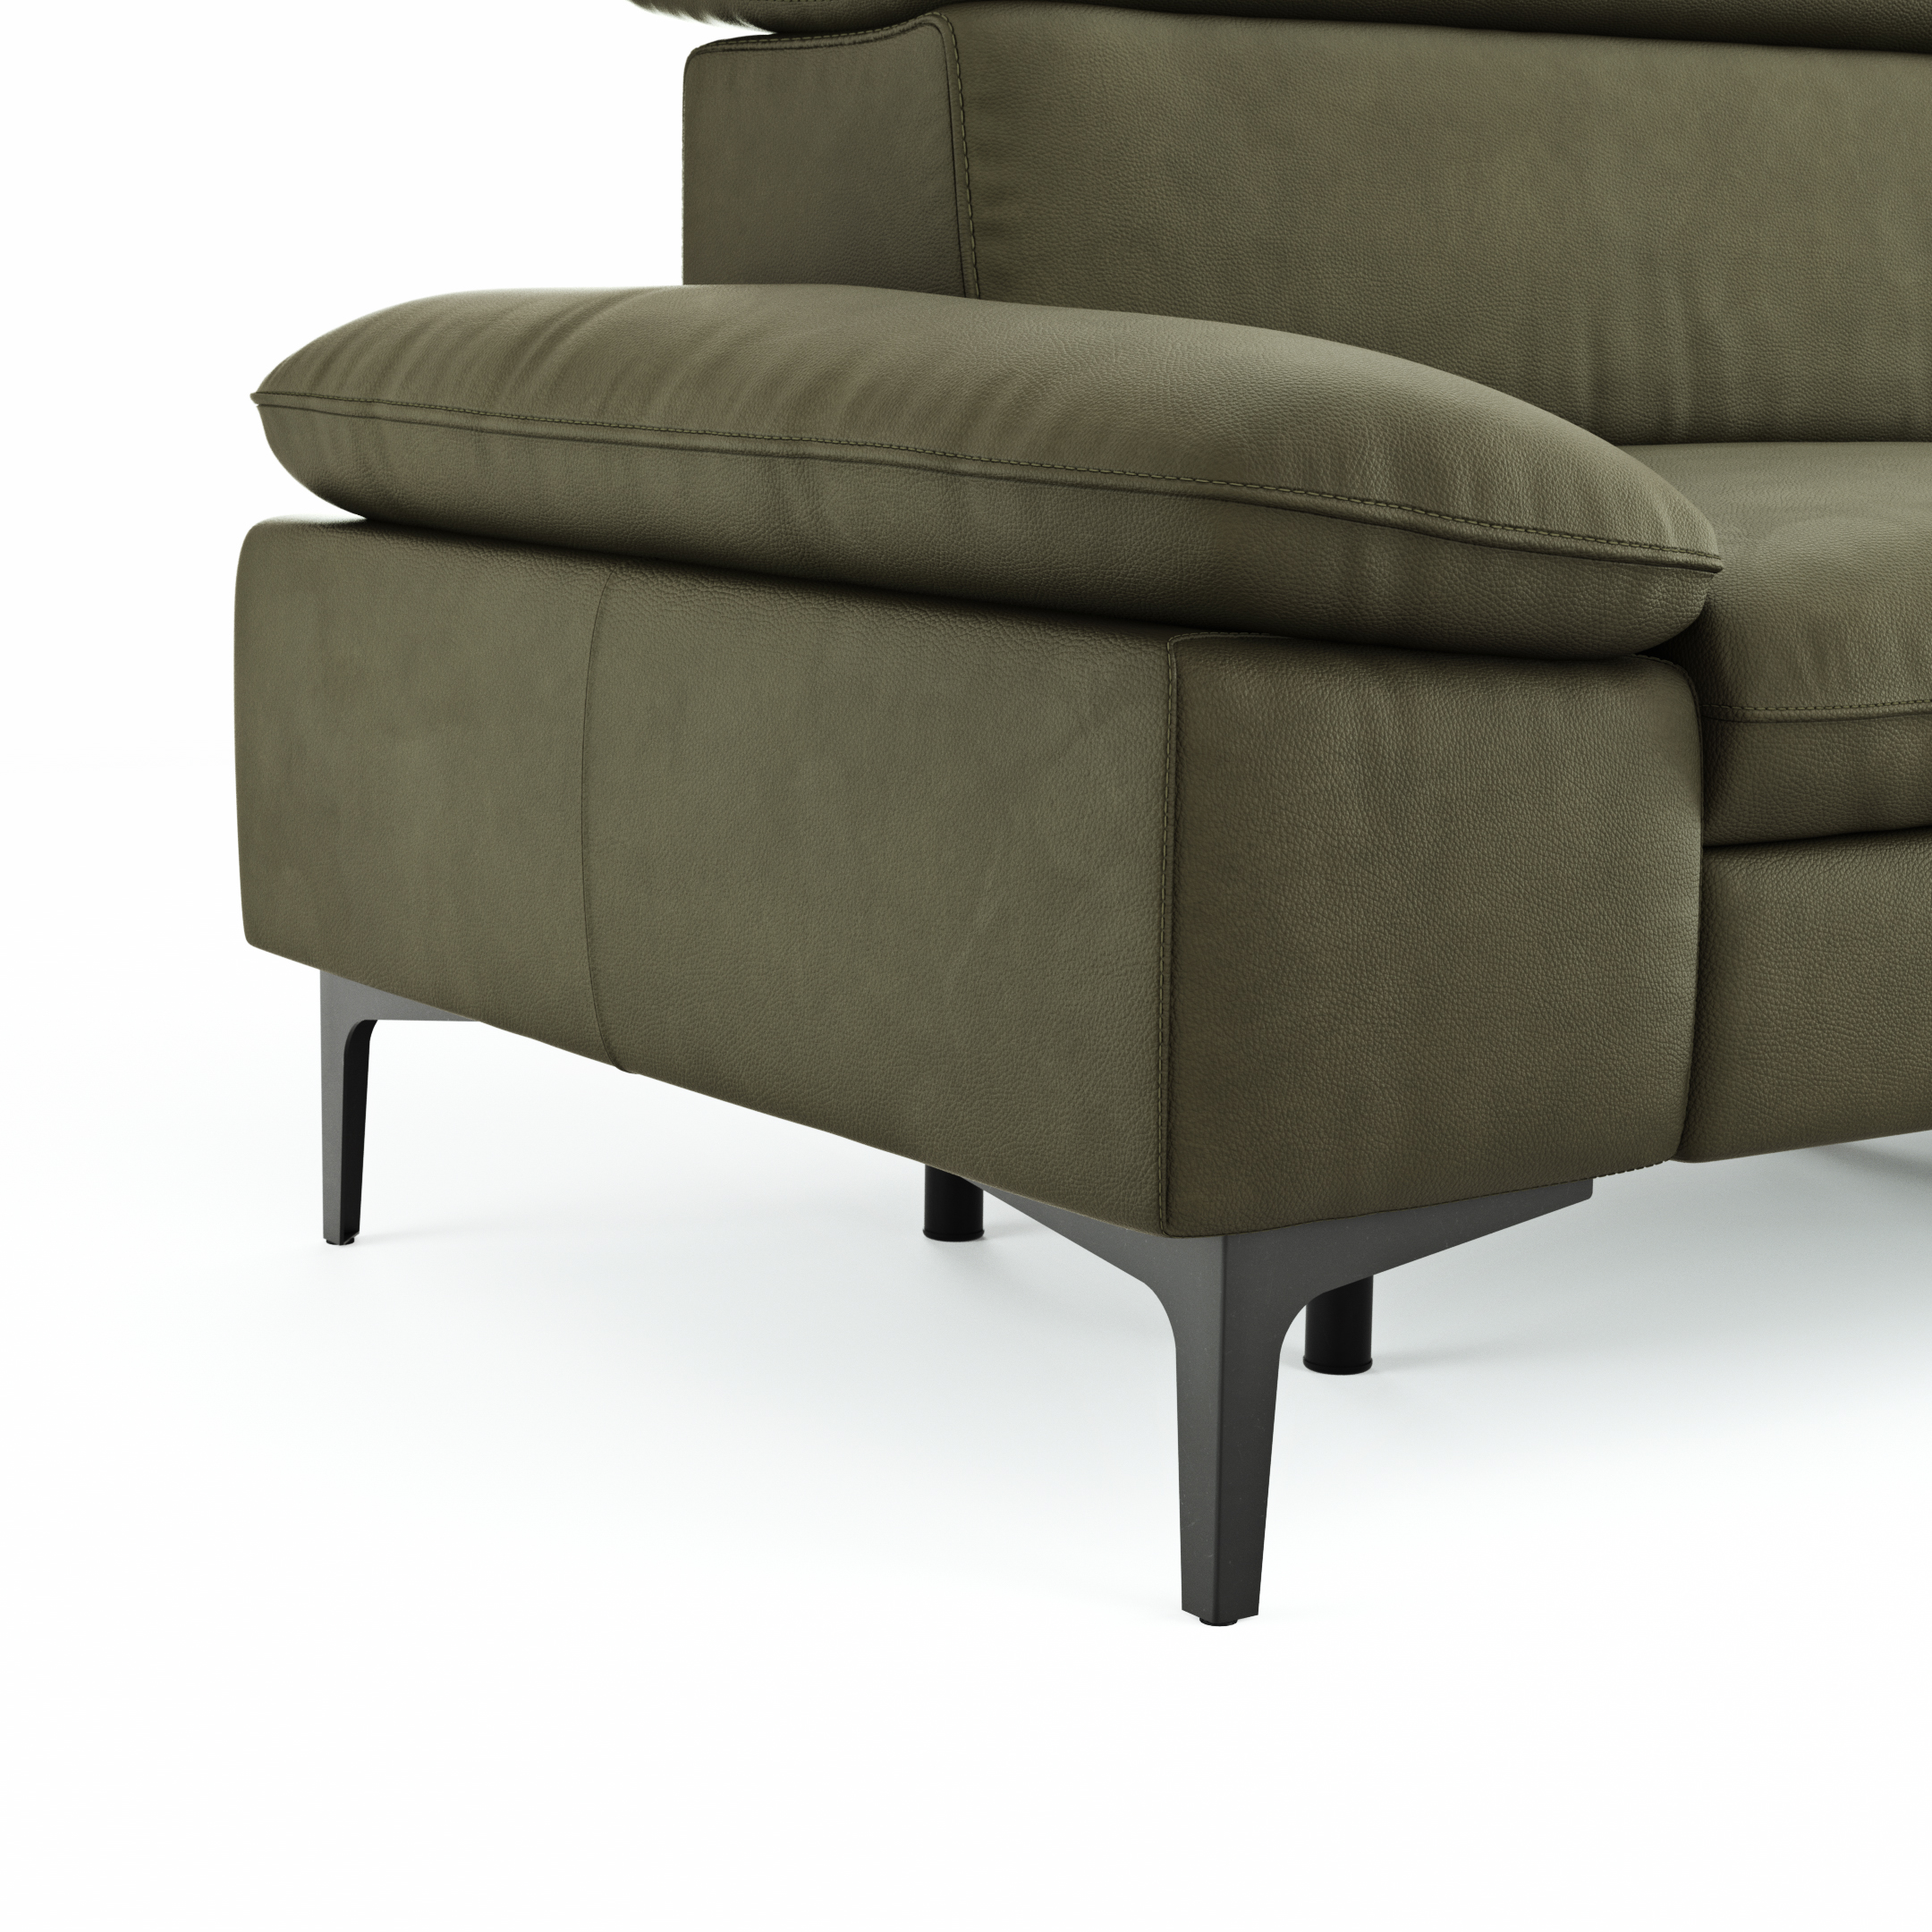 Global Family Sofa Felipa detailbild 1 105135 | Homepoet